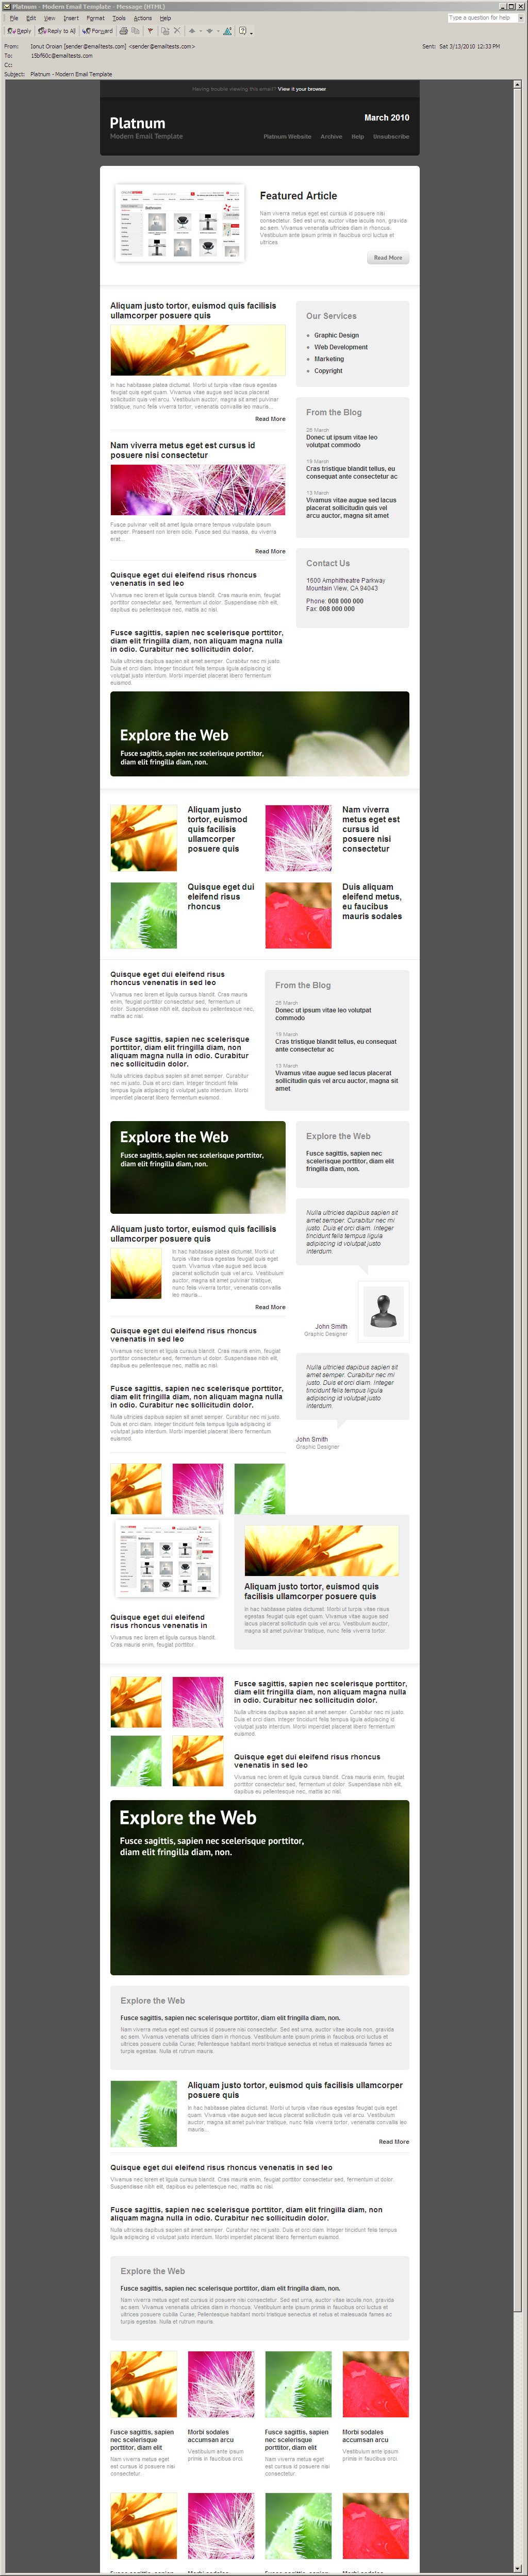 Platnum Email Template, 6 Layouts, 8 Colors - Outlook 2002/XP - All elements listed.